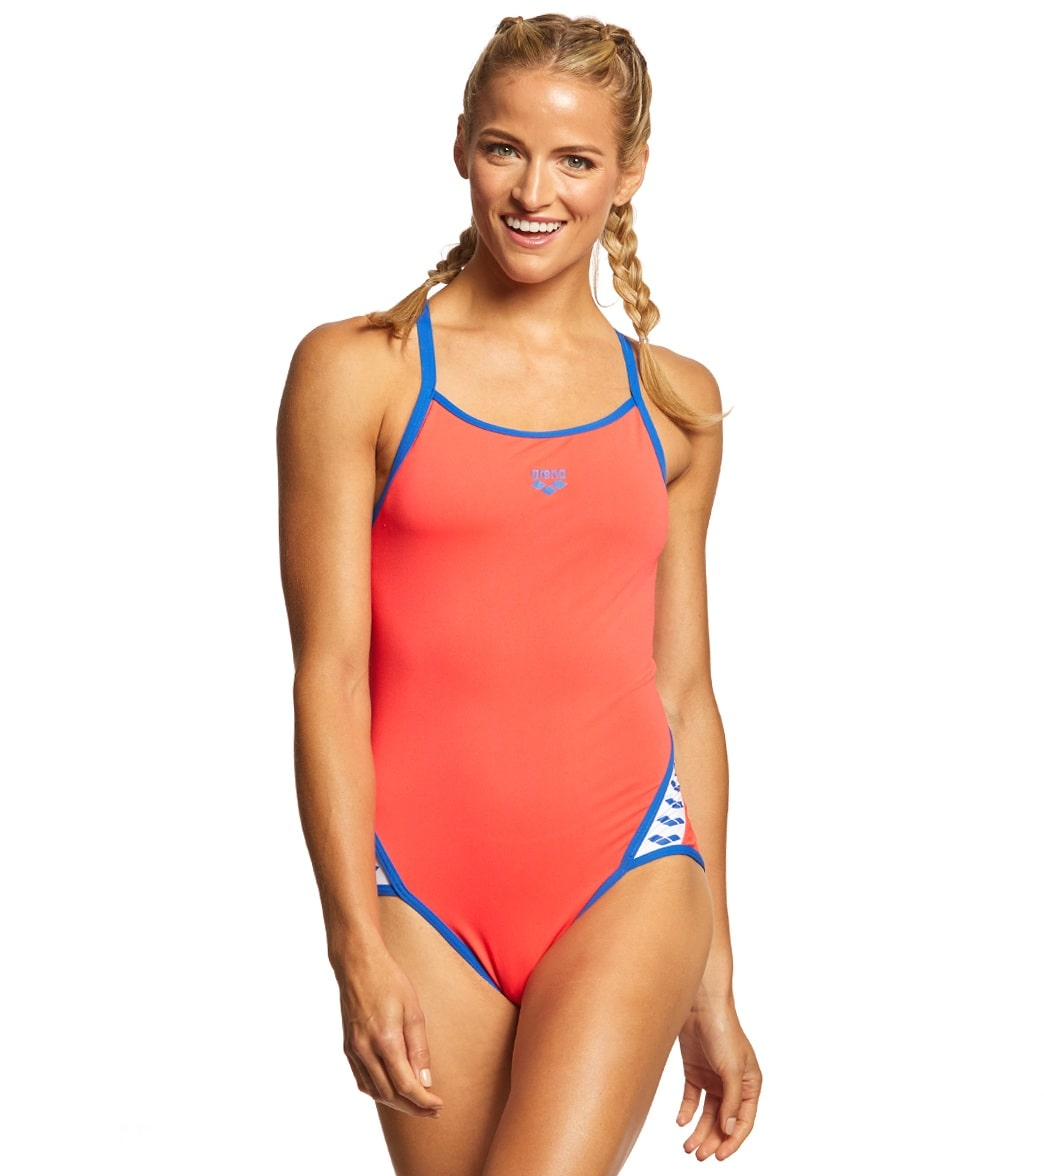 58f258eab8a4 Arena Women s Team Stripe MaxLife SuperFly Back One Piece Swimsuit at  SwimOutlet.com - Free Shipping